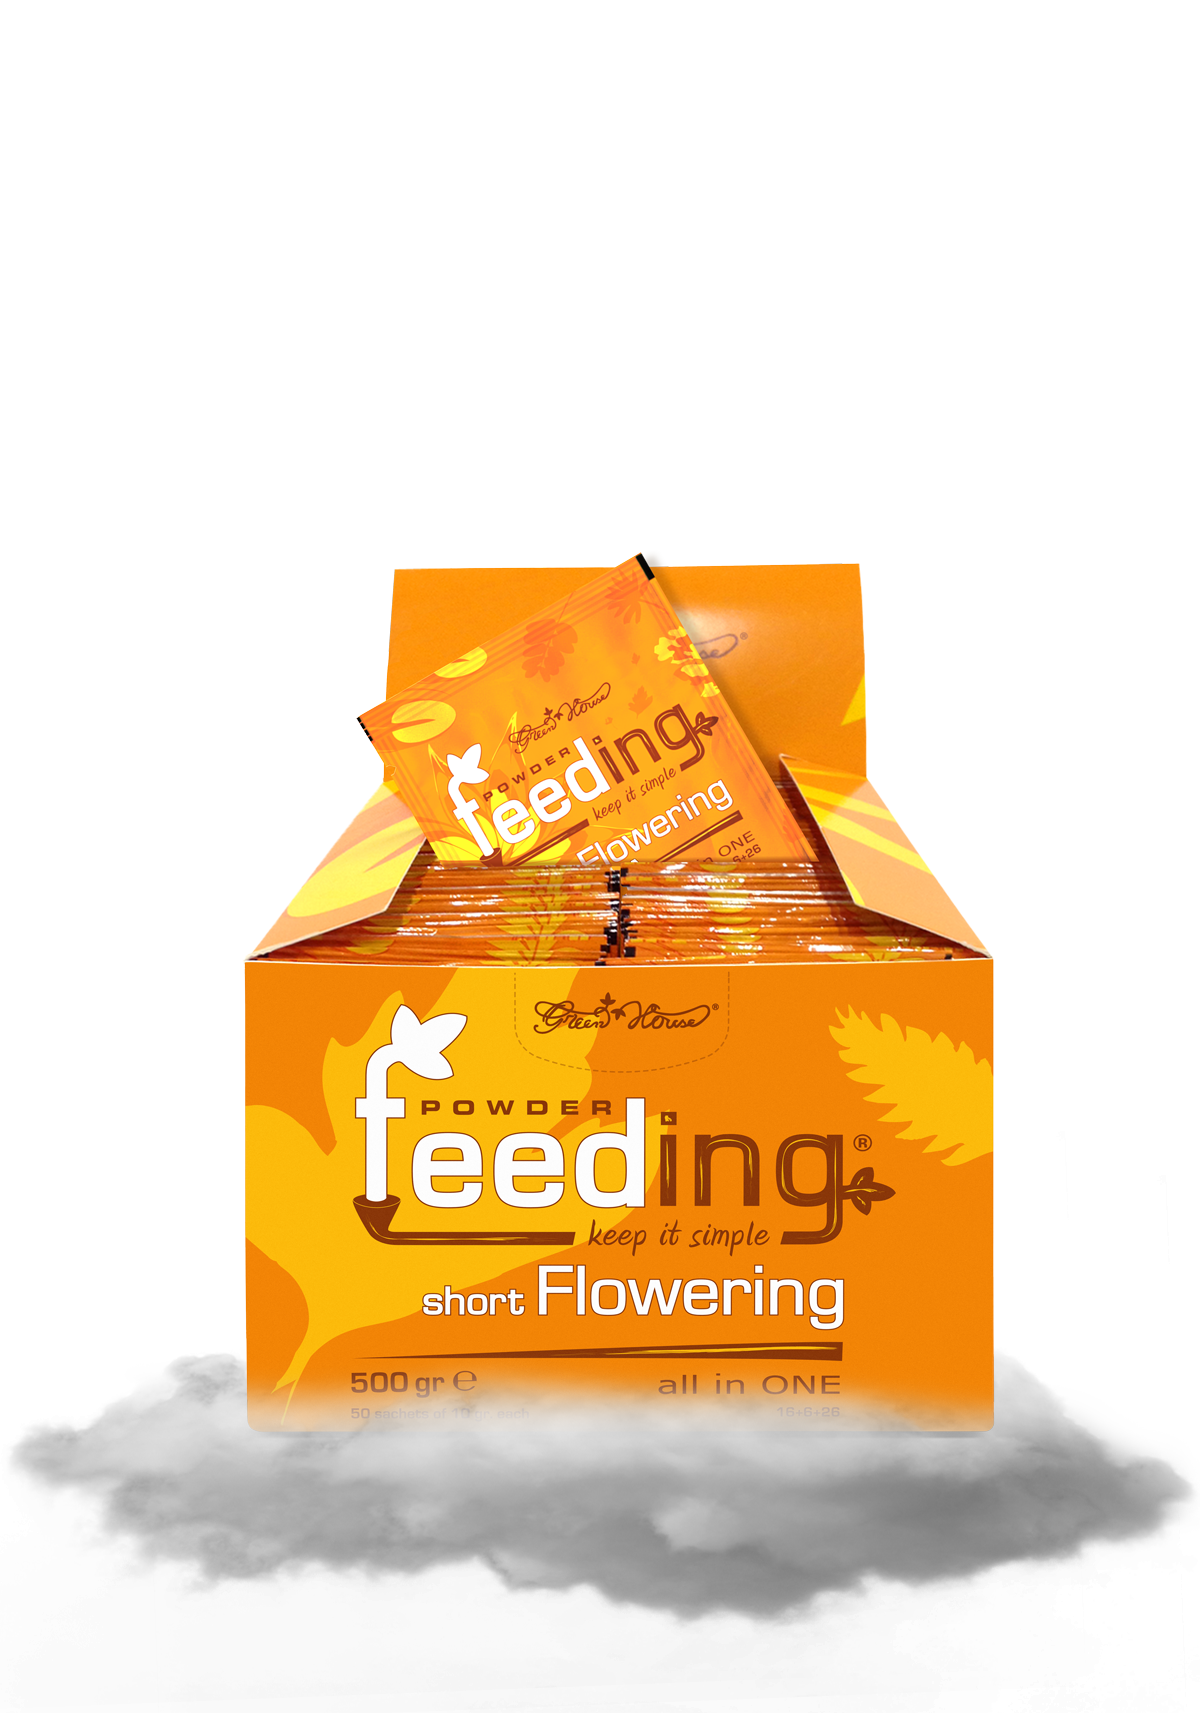 Powder Feeding Short Flowering 500g BOX